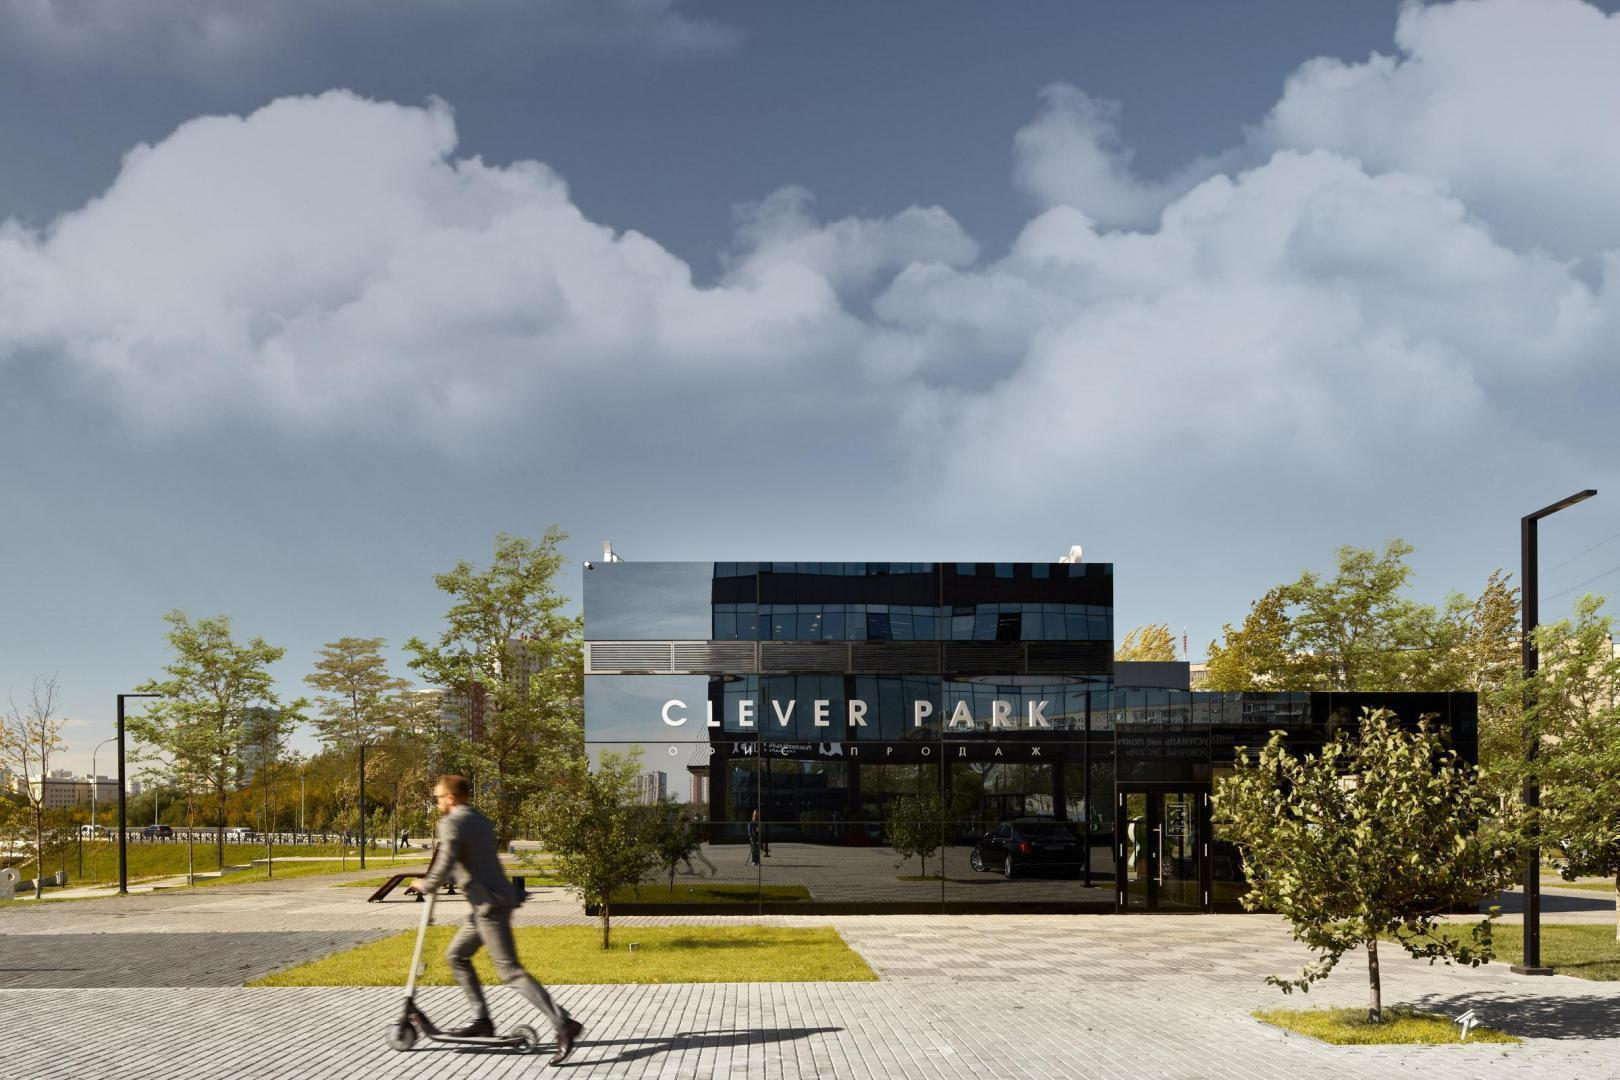 CLEVER PARK / Sales office